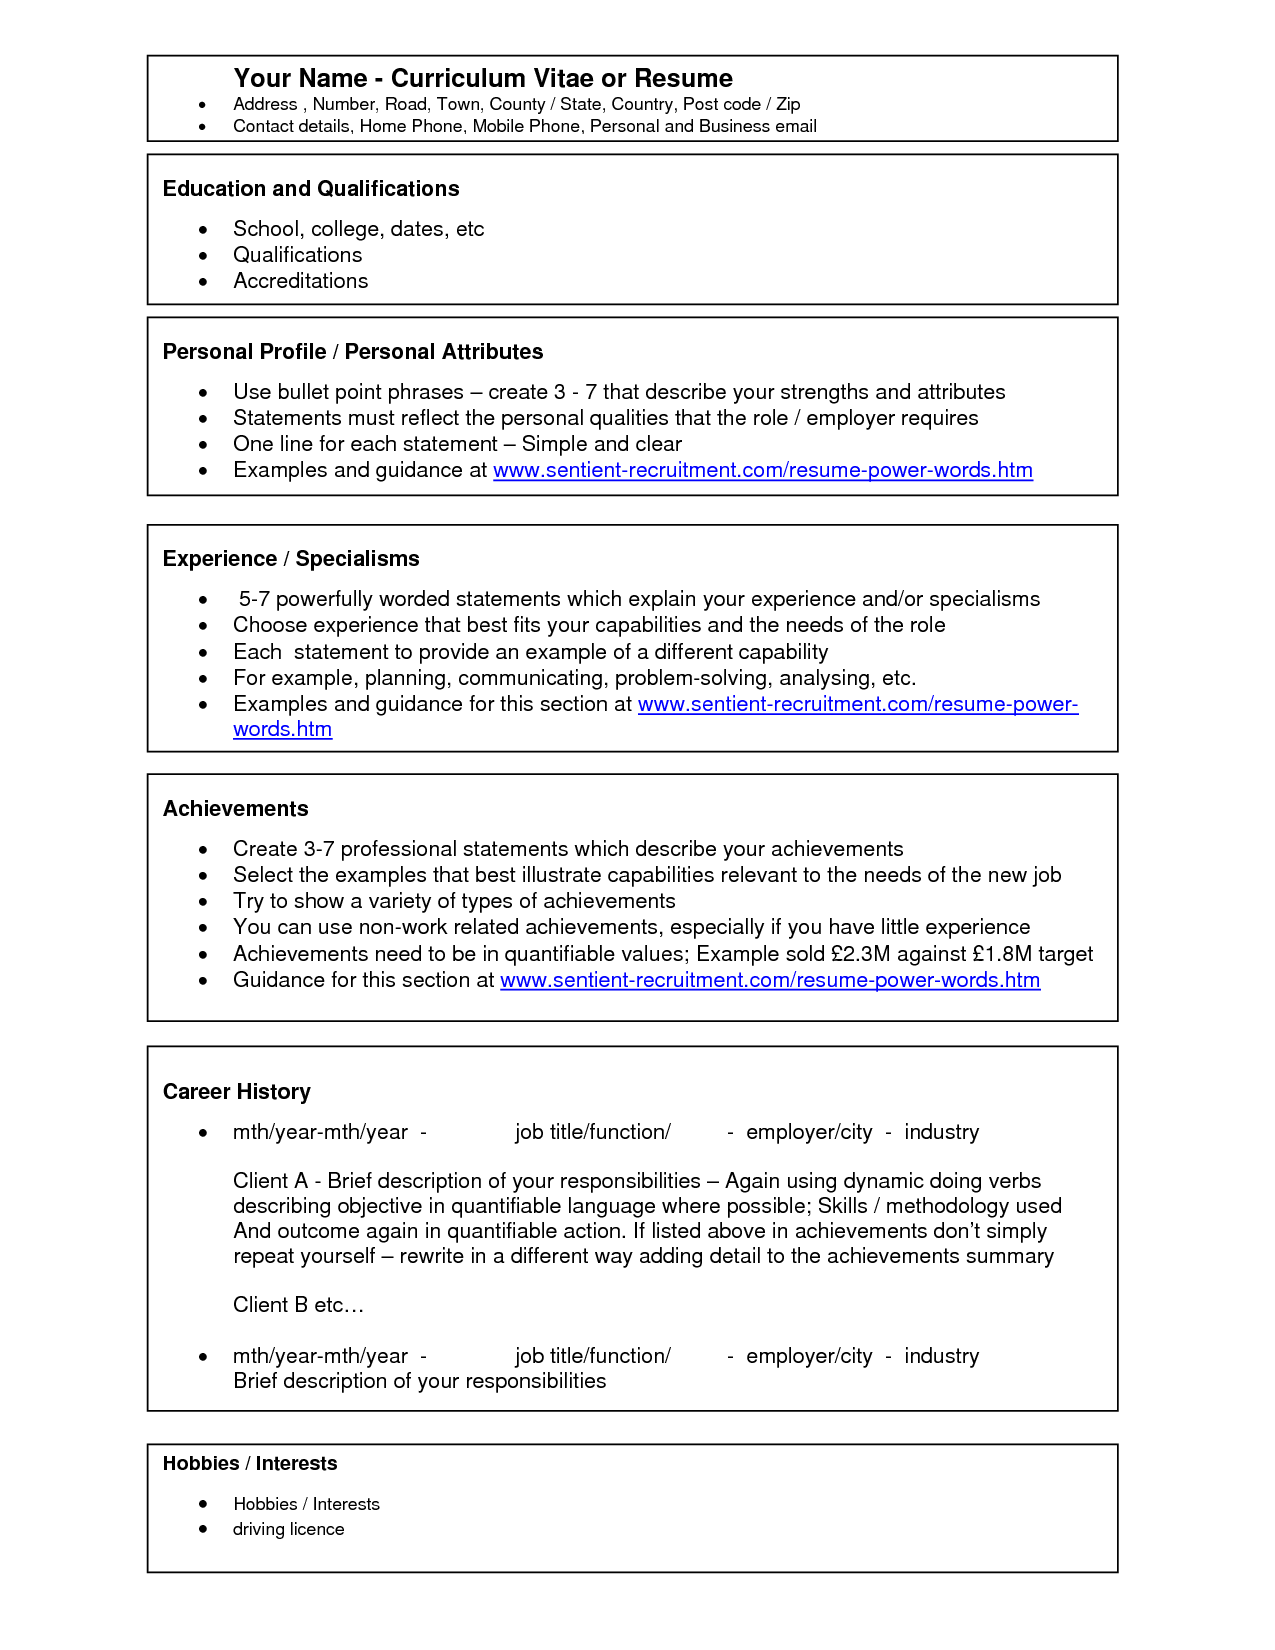 cv format for ms word